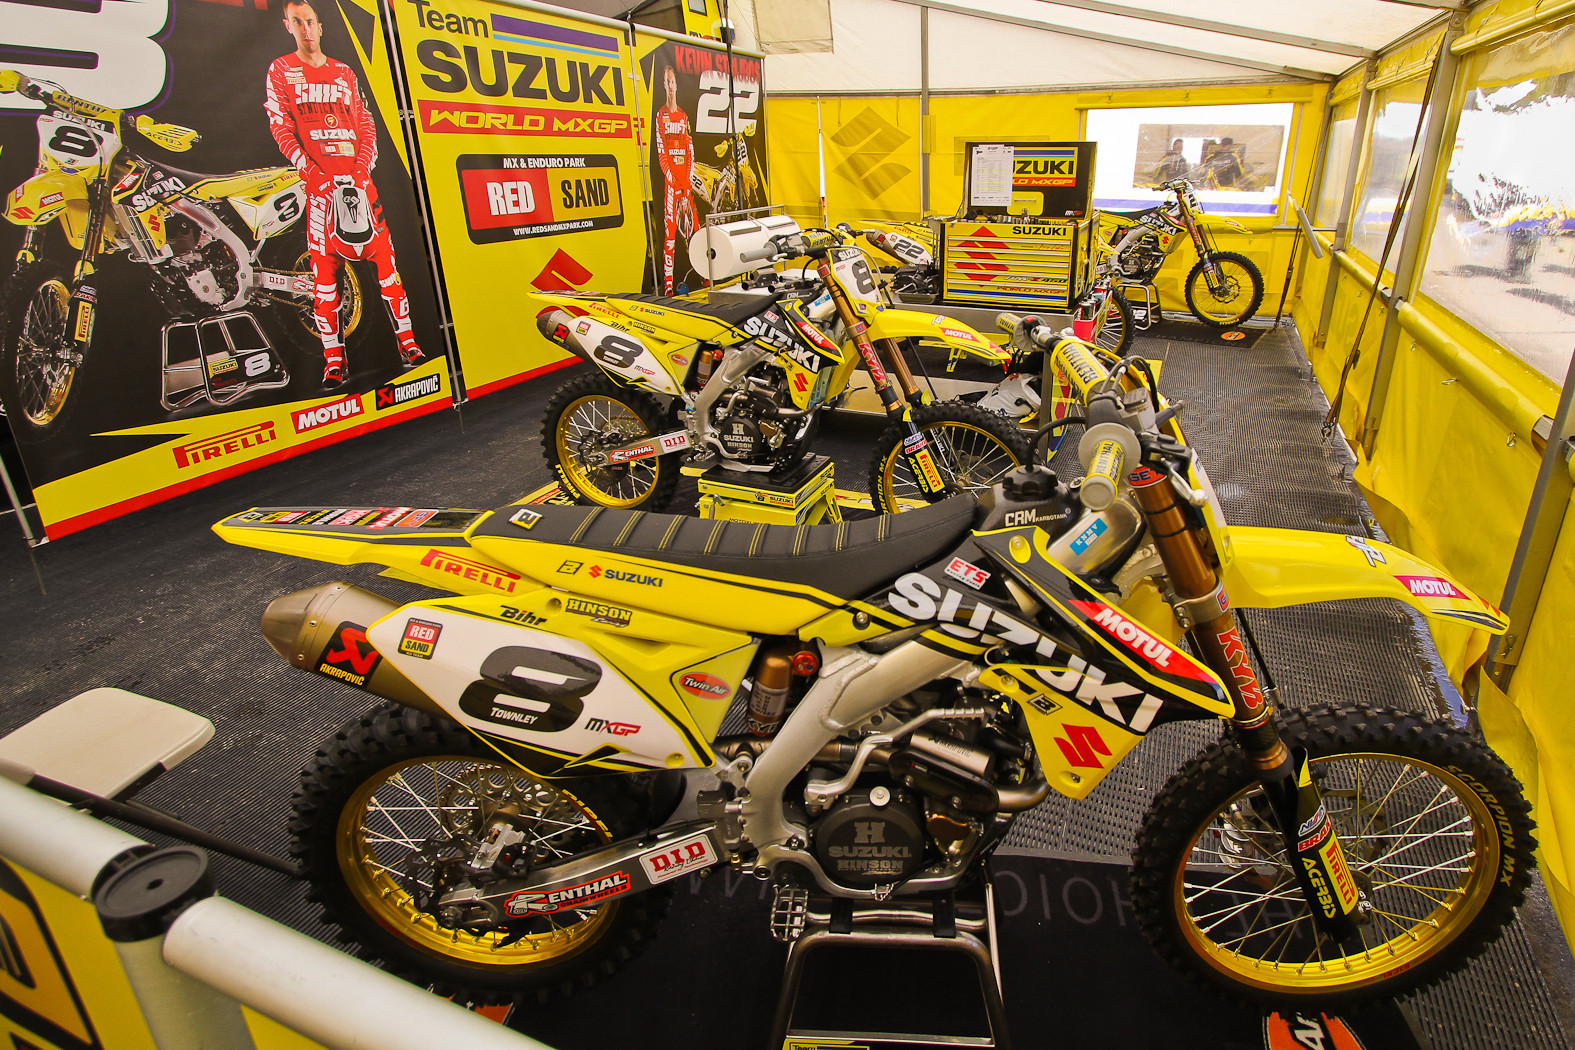 Team Suzuki World MXGP - In the Pits: MXGP of Europe - Motocross Pictures - Vital MX